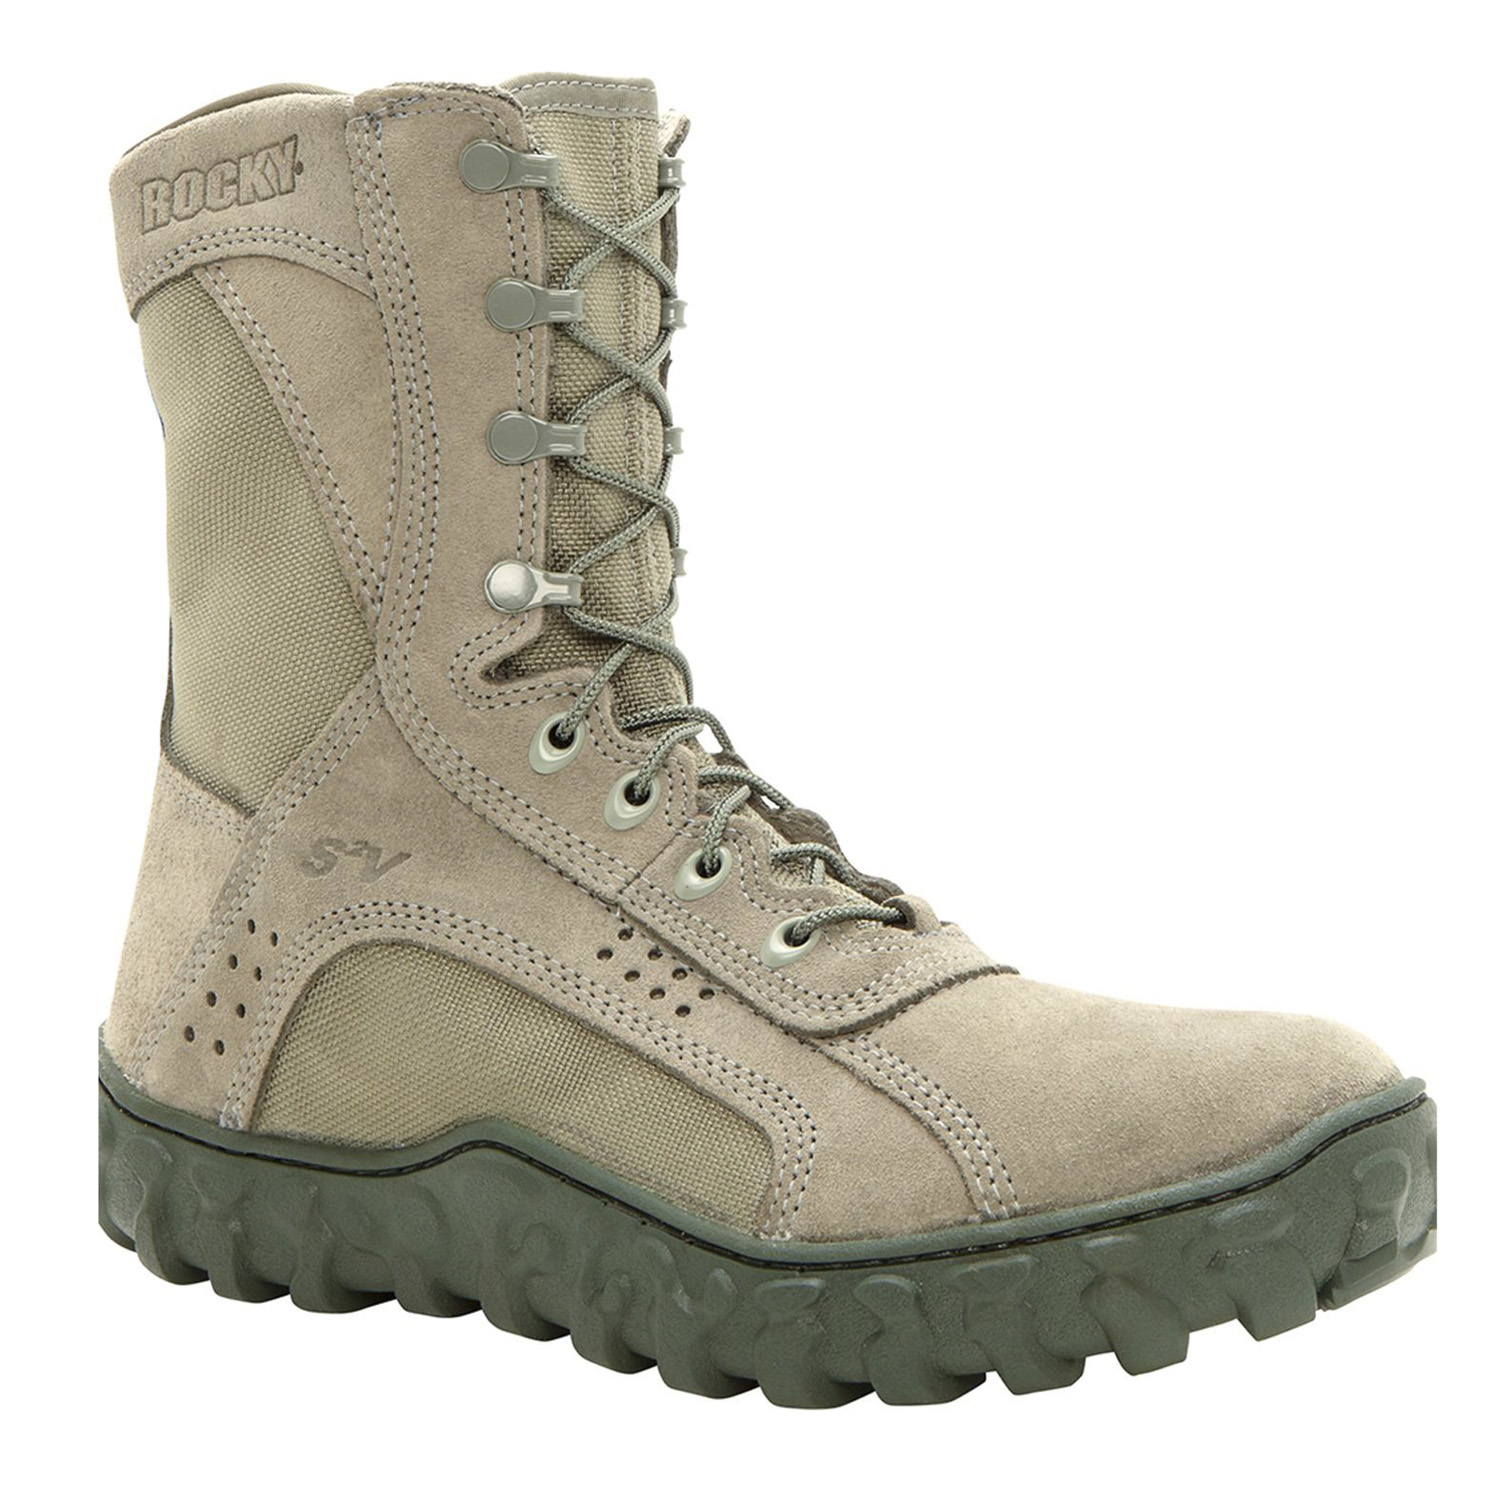 Rocky S2V Military Steel Toe Boot